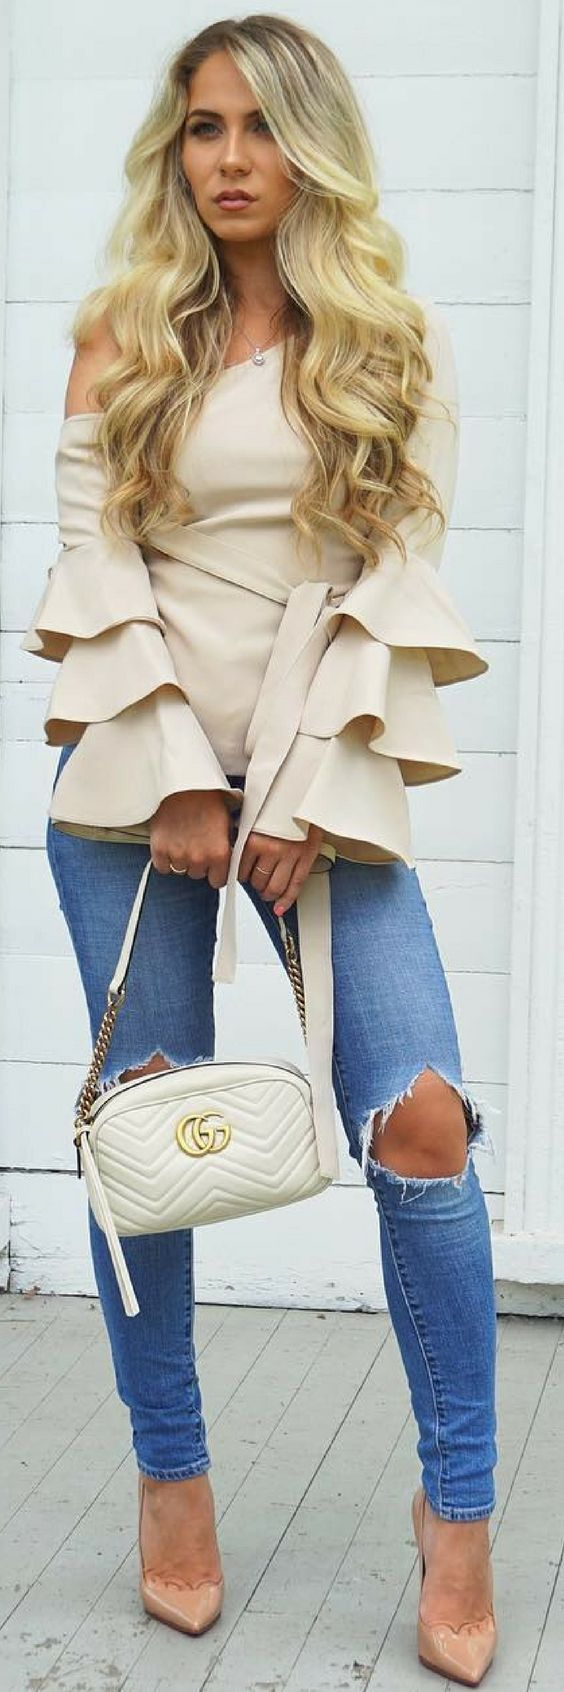 What a statement blouse